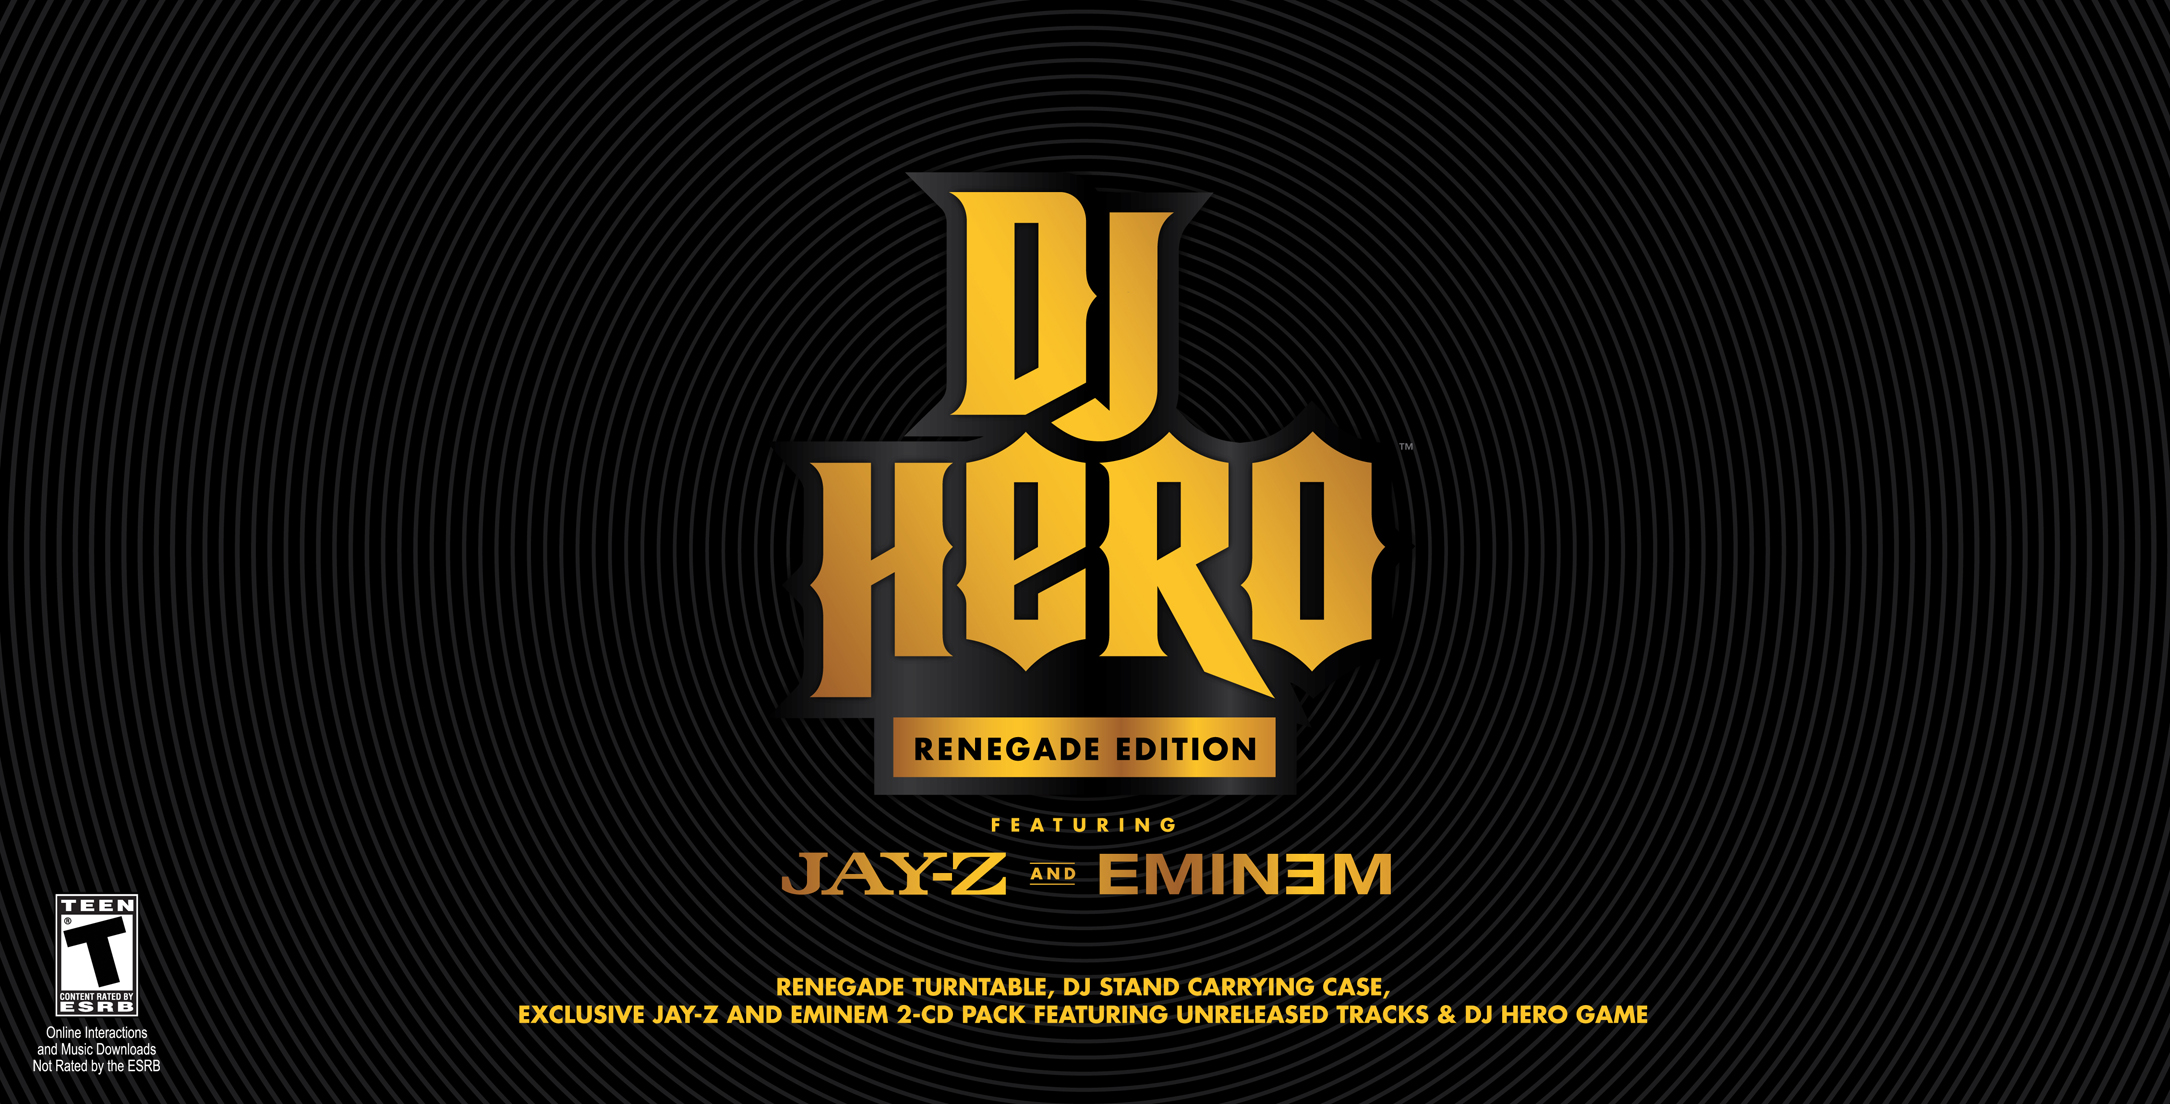 dj-hero-renegade-edition---box-art